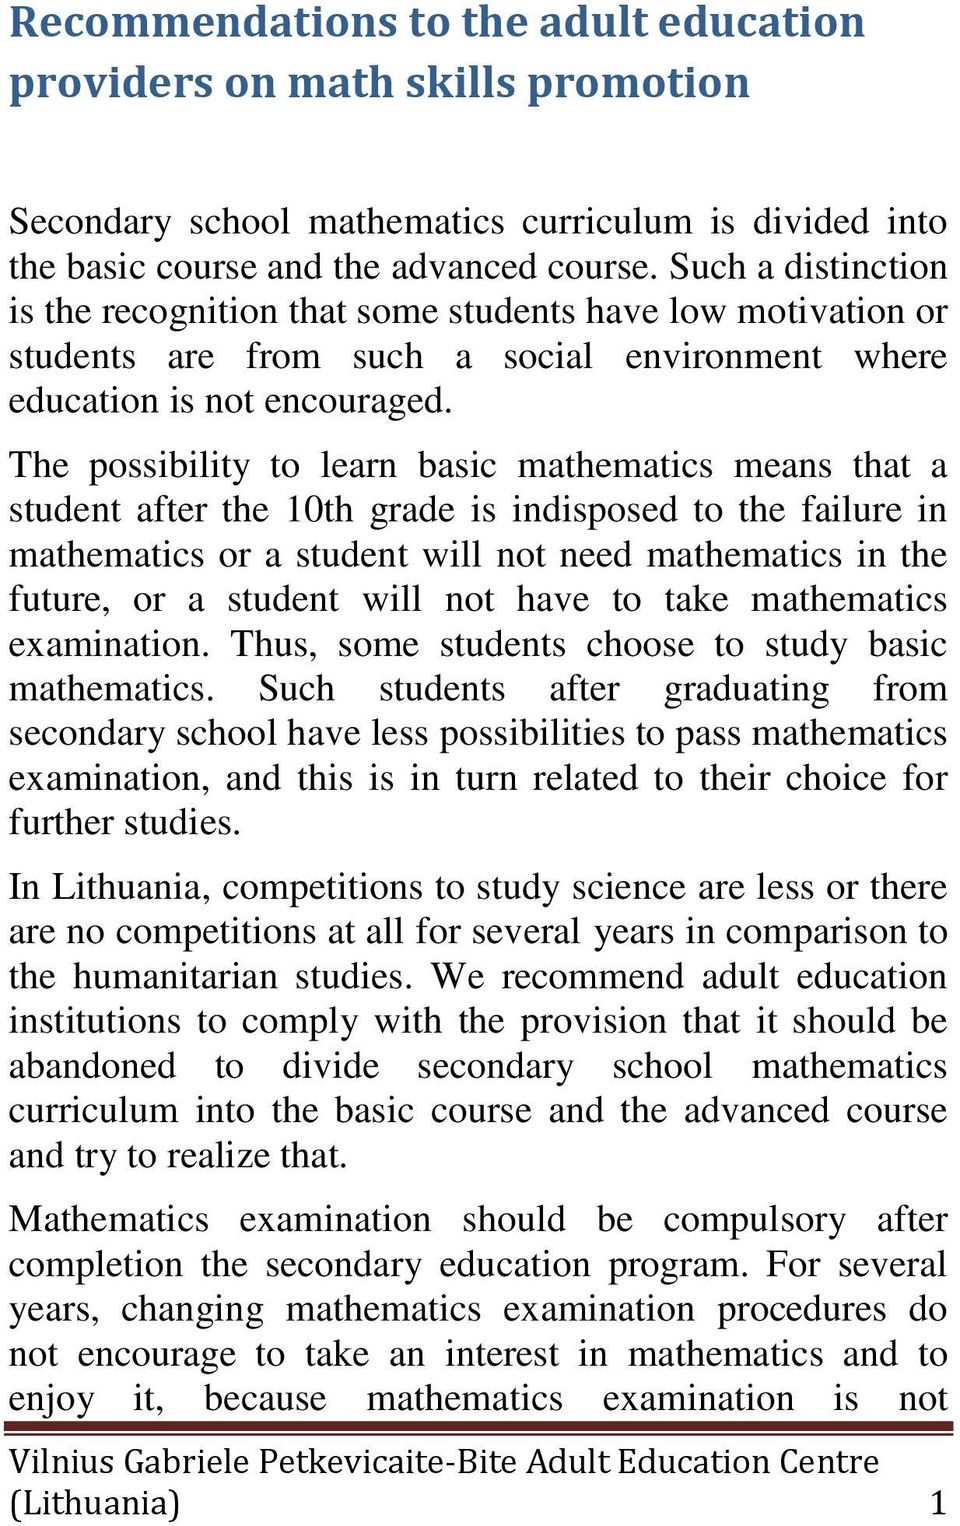 The possibility to learn basic mathematics means that a student after the 10th grade is indisposed to the failure in mathematics or a student will not need mathematics in the future, or a student